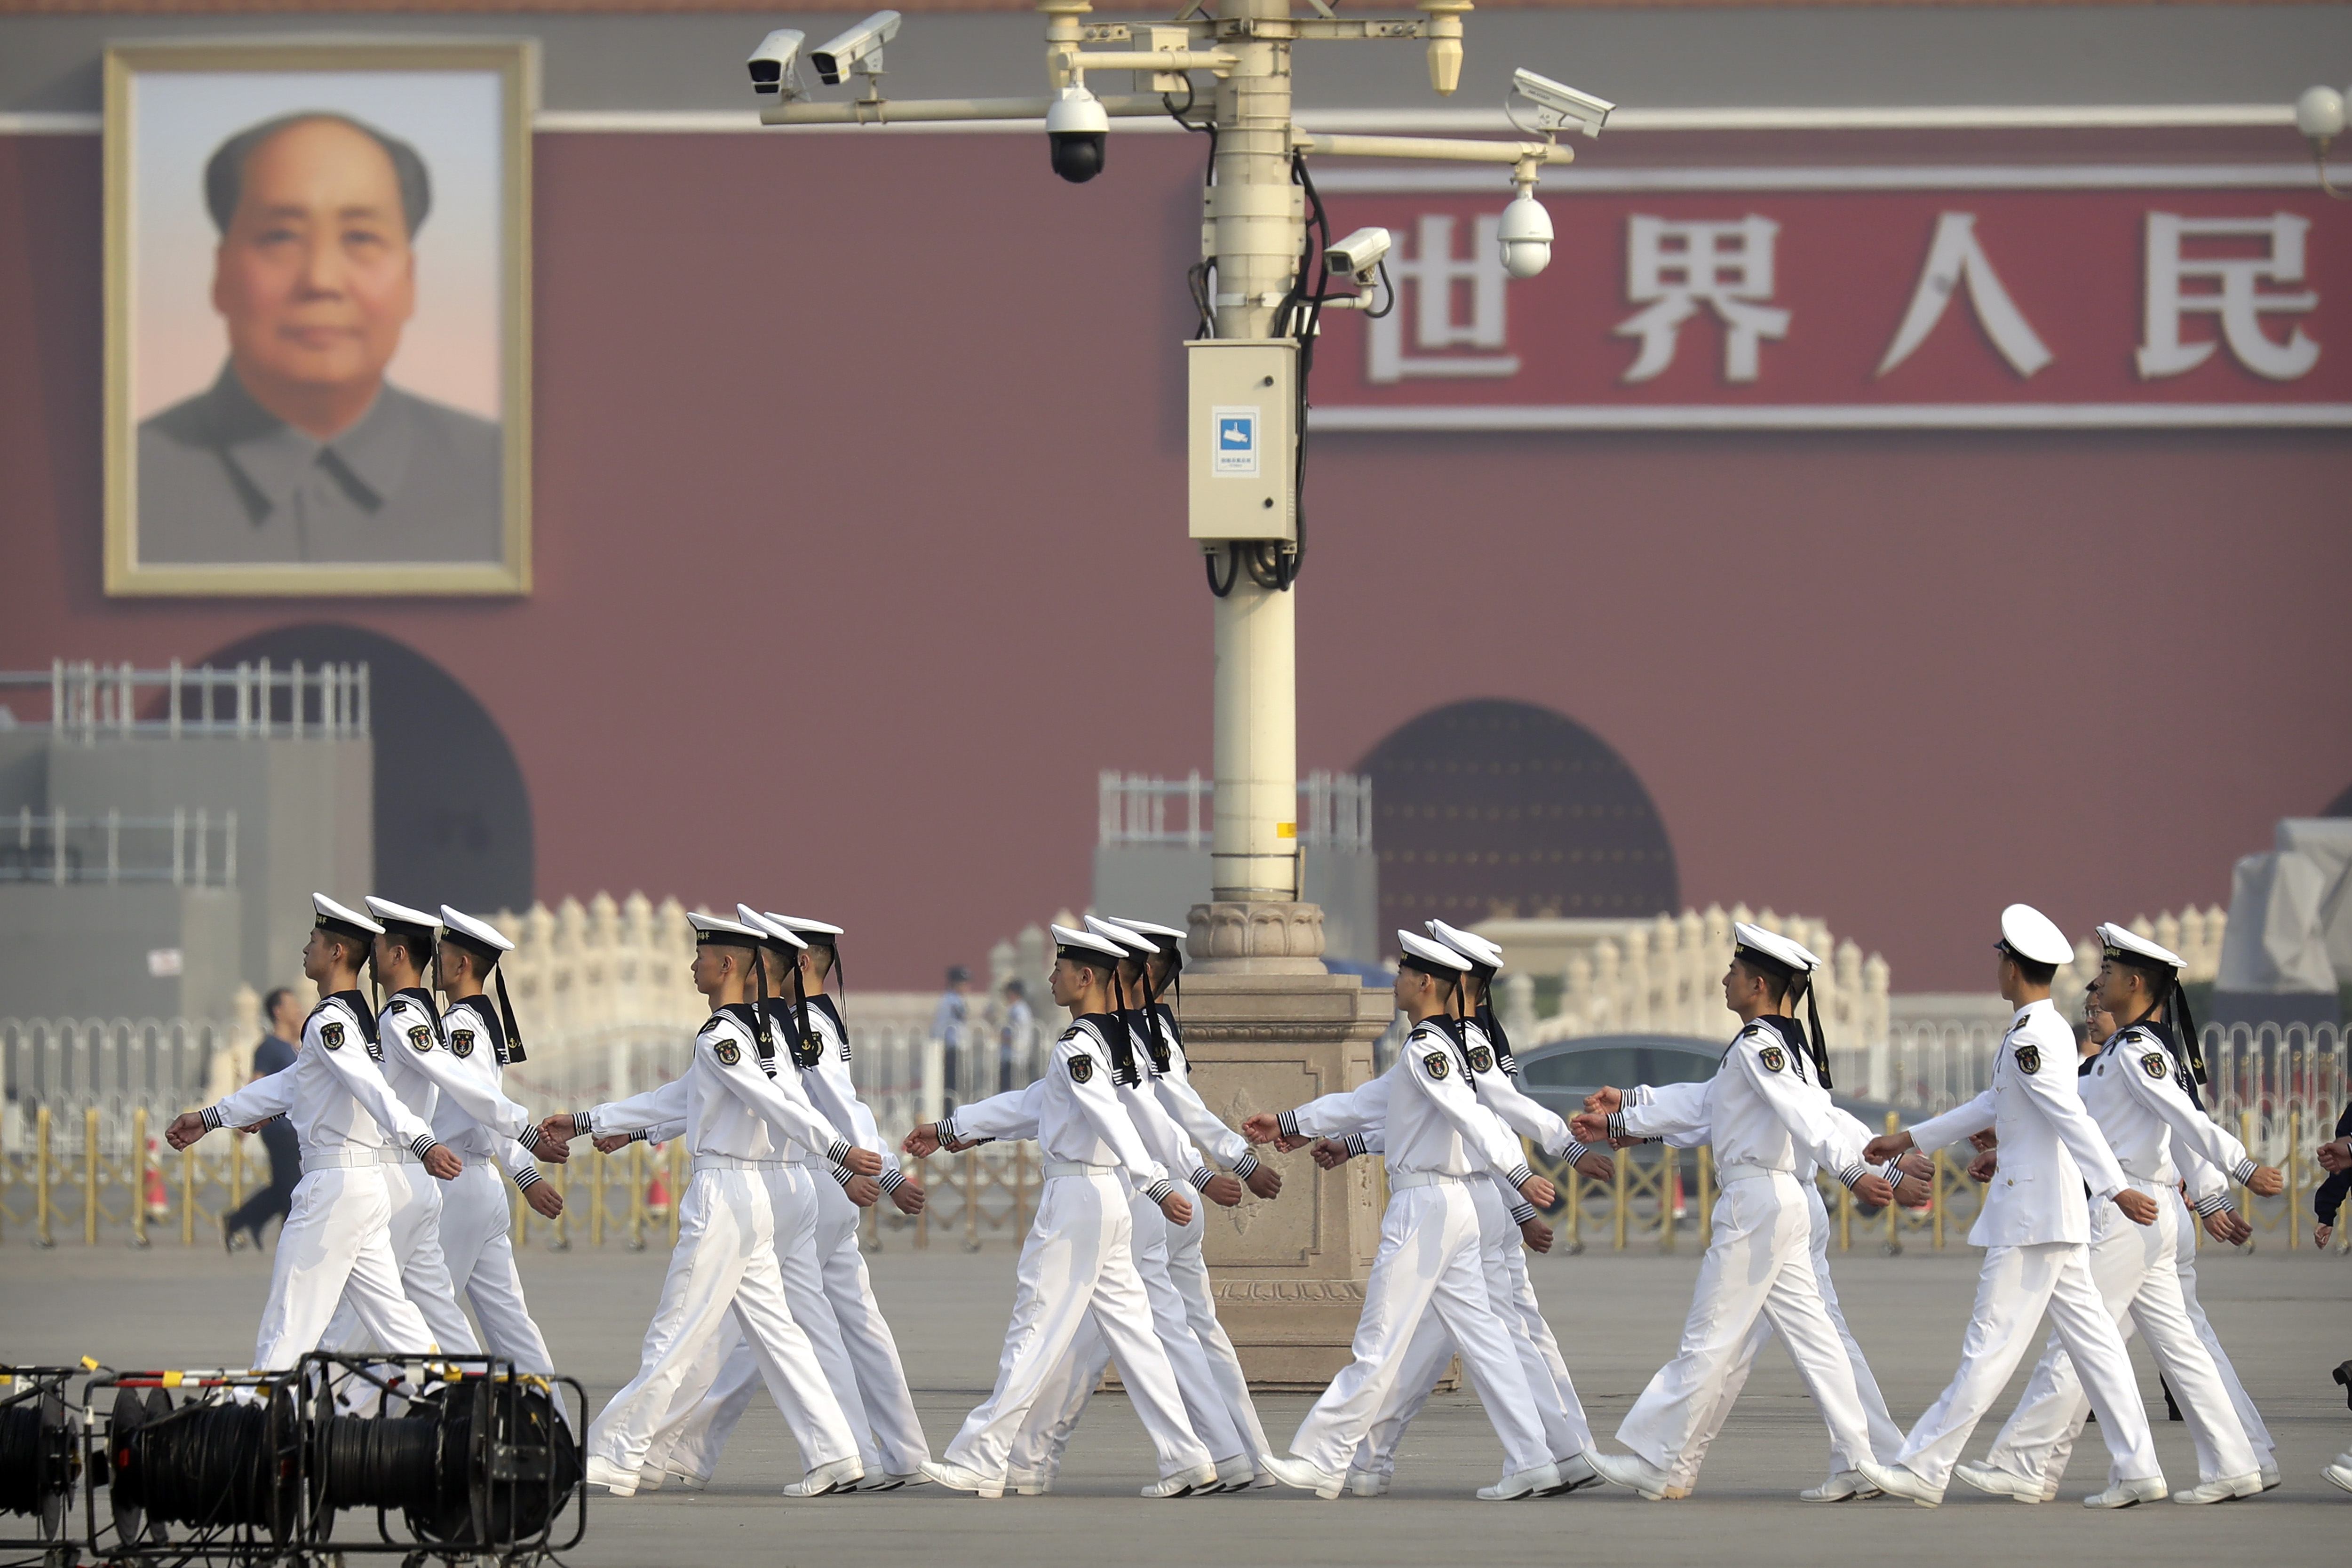 Cadets from China's People's Liberation Army (PLA) Navy march in formation before a ceremony to mark Martyr's Day at Tiananmen Square in Beijing, Monday, Sept. 30, 2019. (Mark Schiefelbein - Pool/Getty Images)